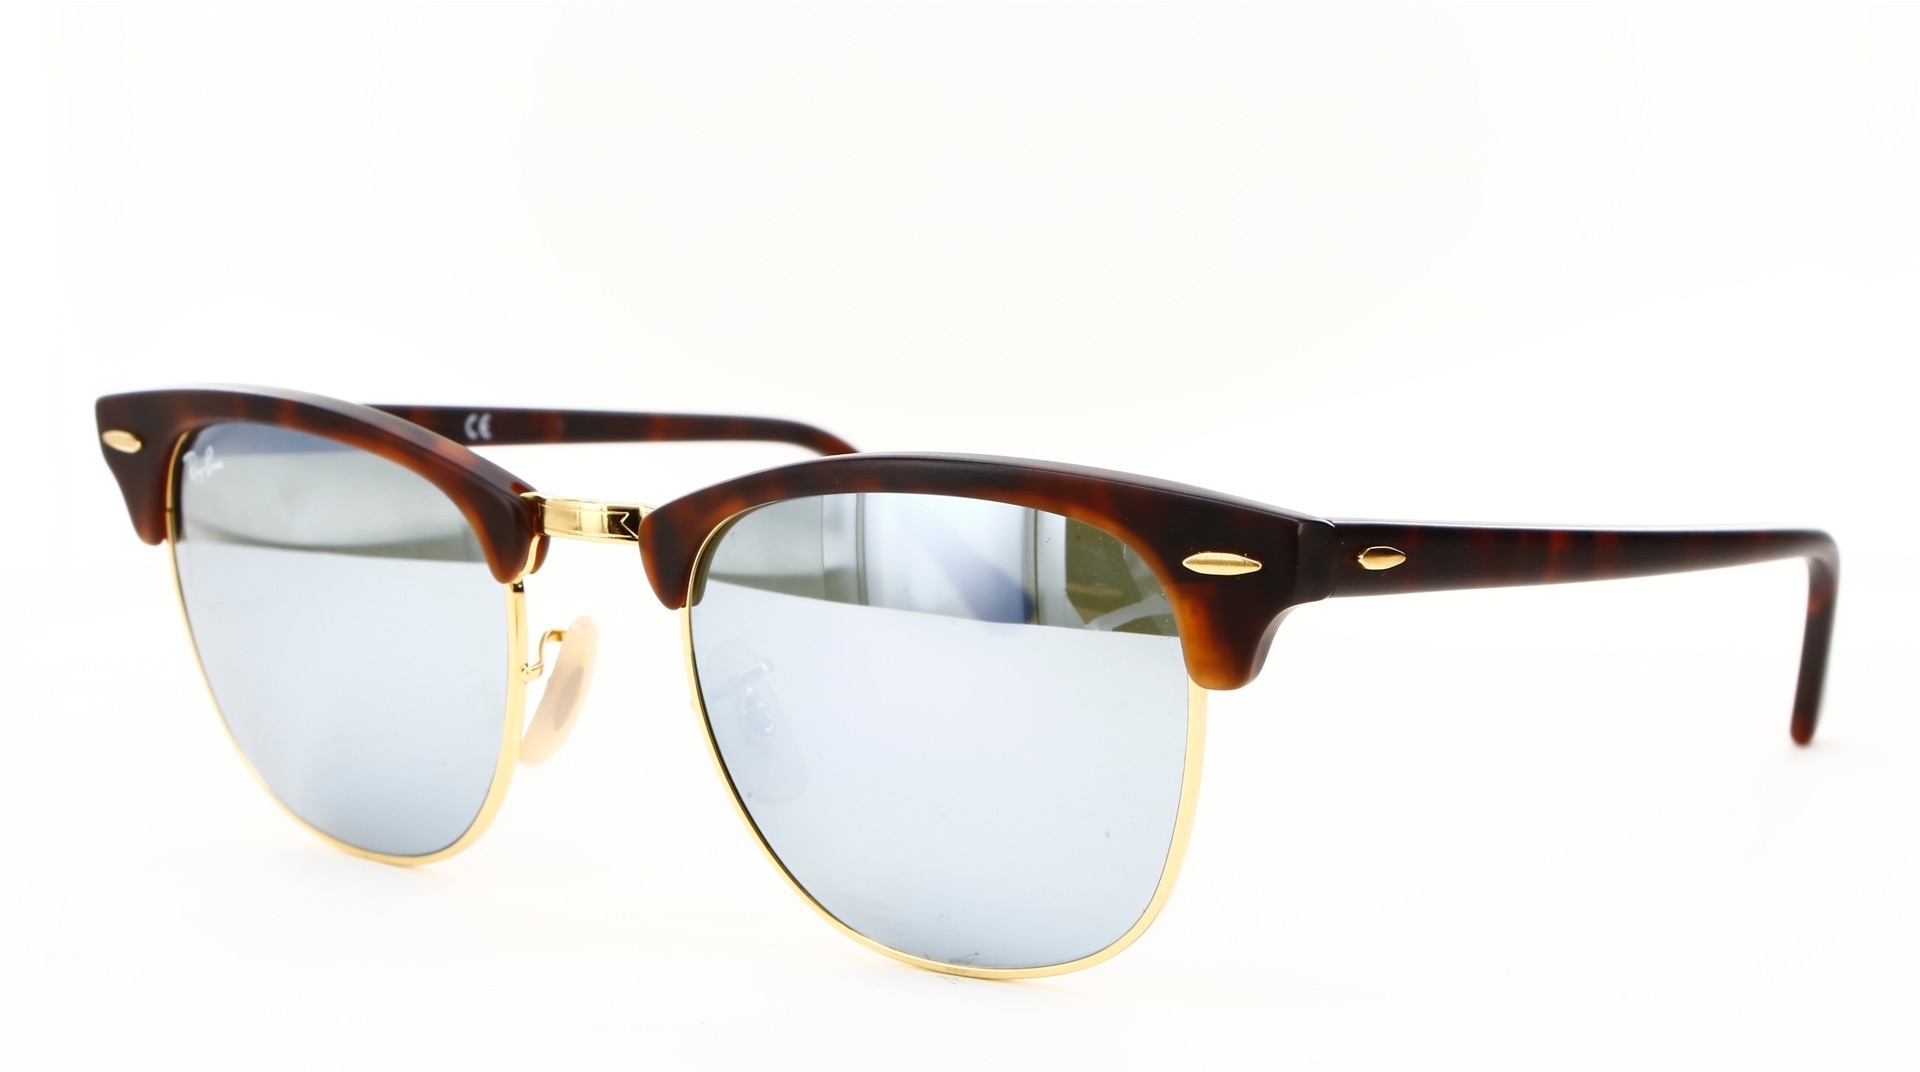 Ray-Ban - ref: 72371